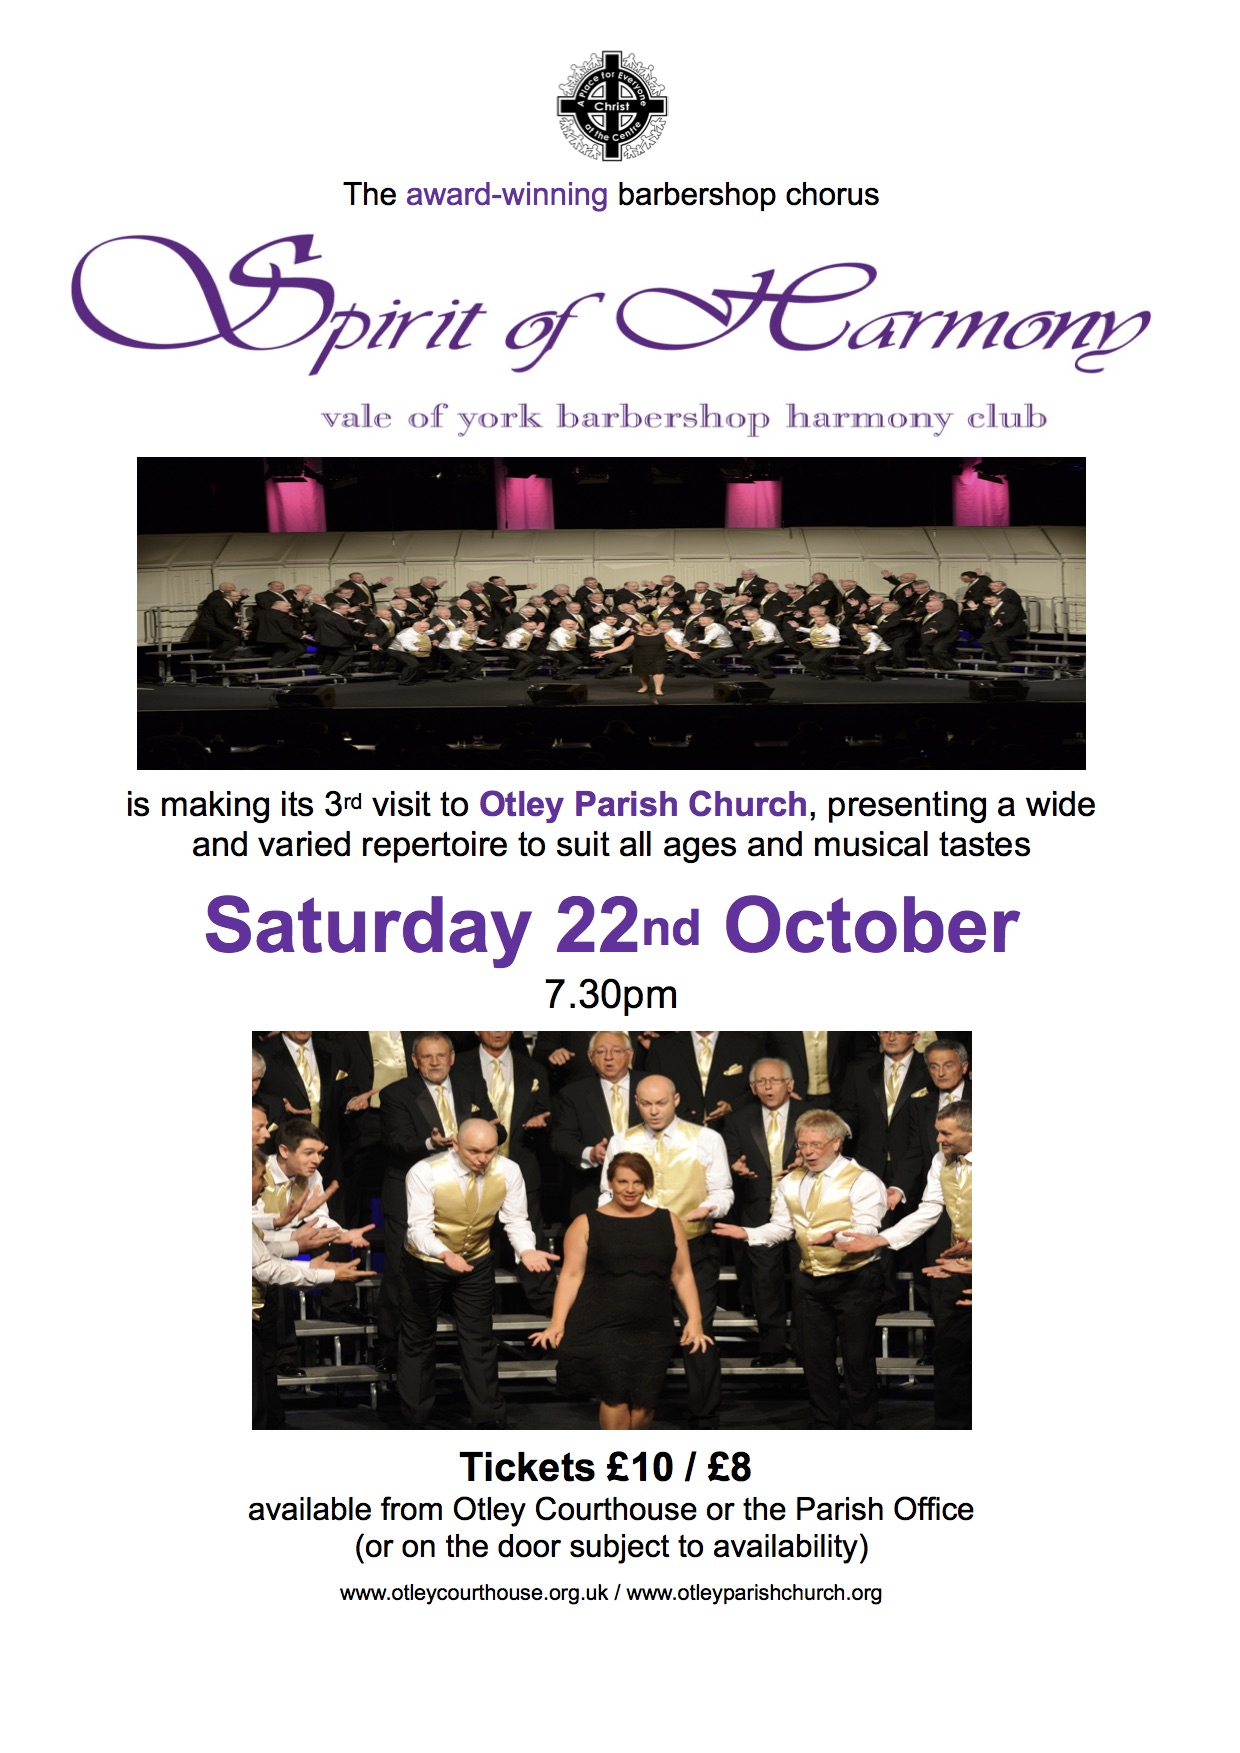 spirit-of-harmony-poster-a3